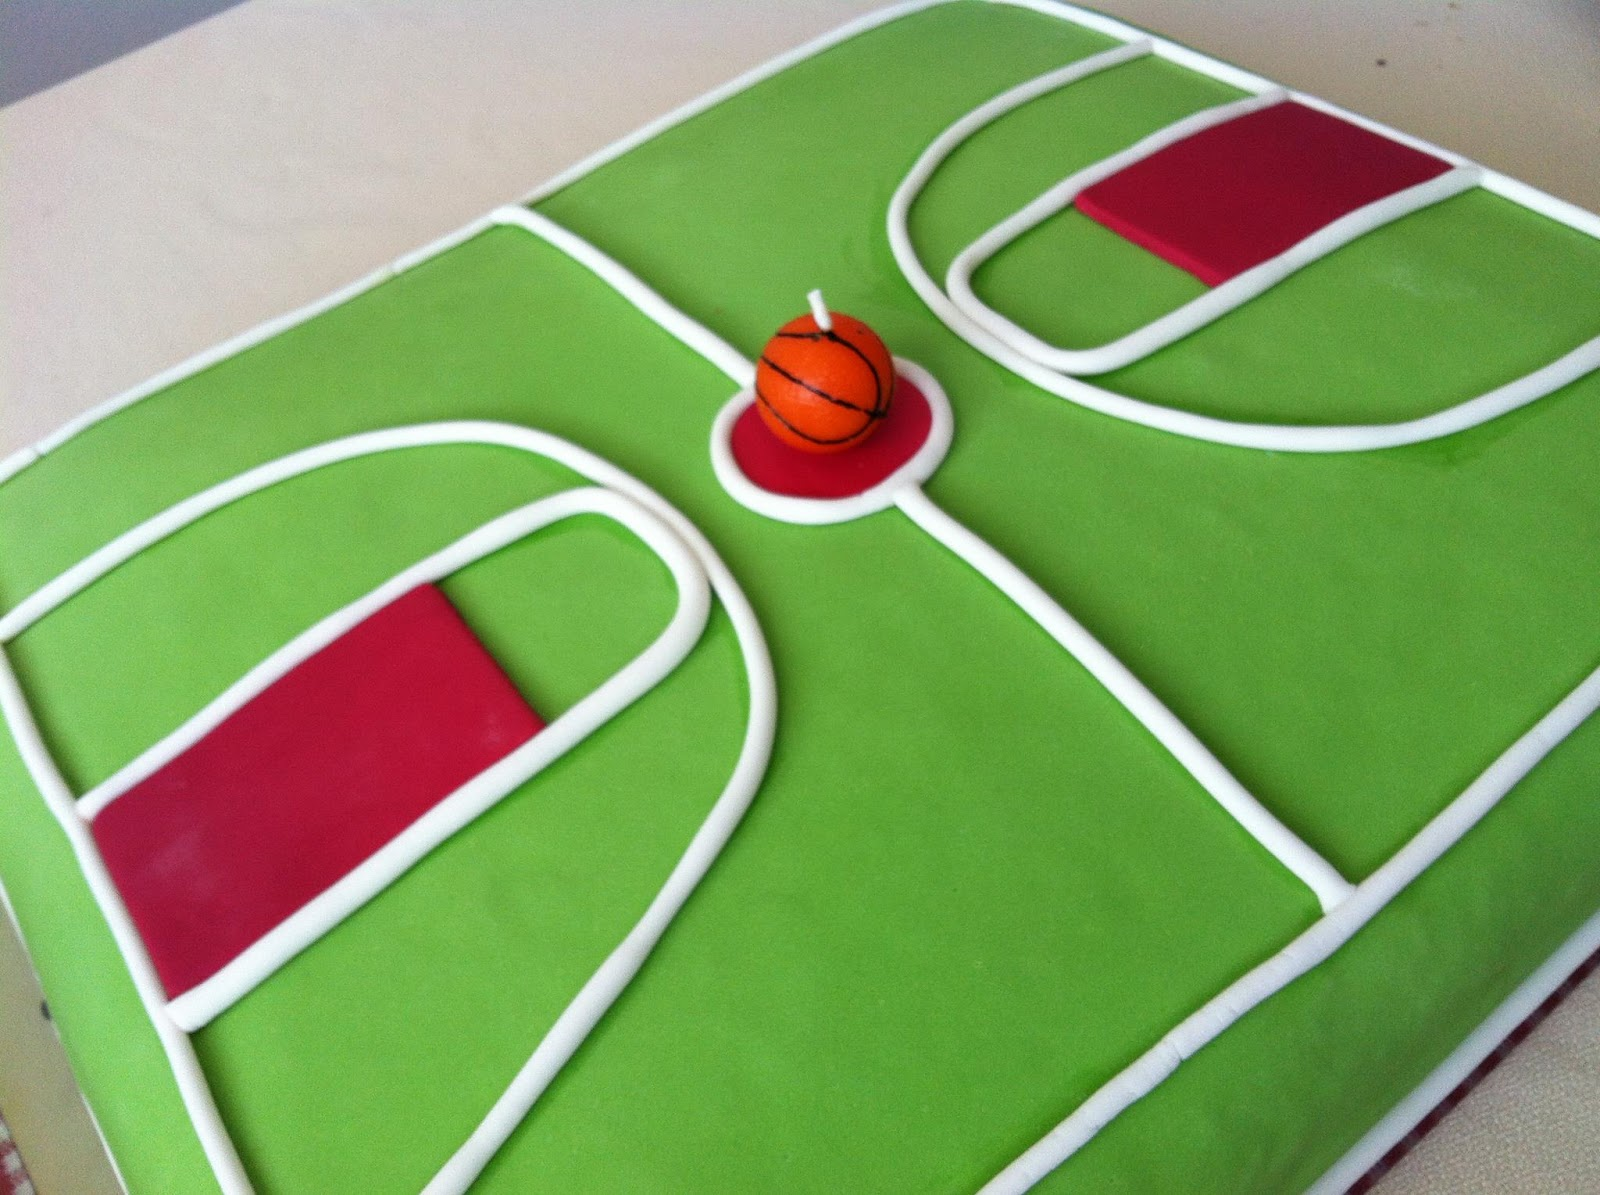 Basketball Court Cake Images : HOME-MADE: Basketball Court Cake